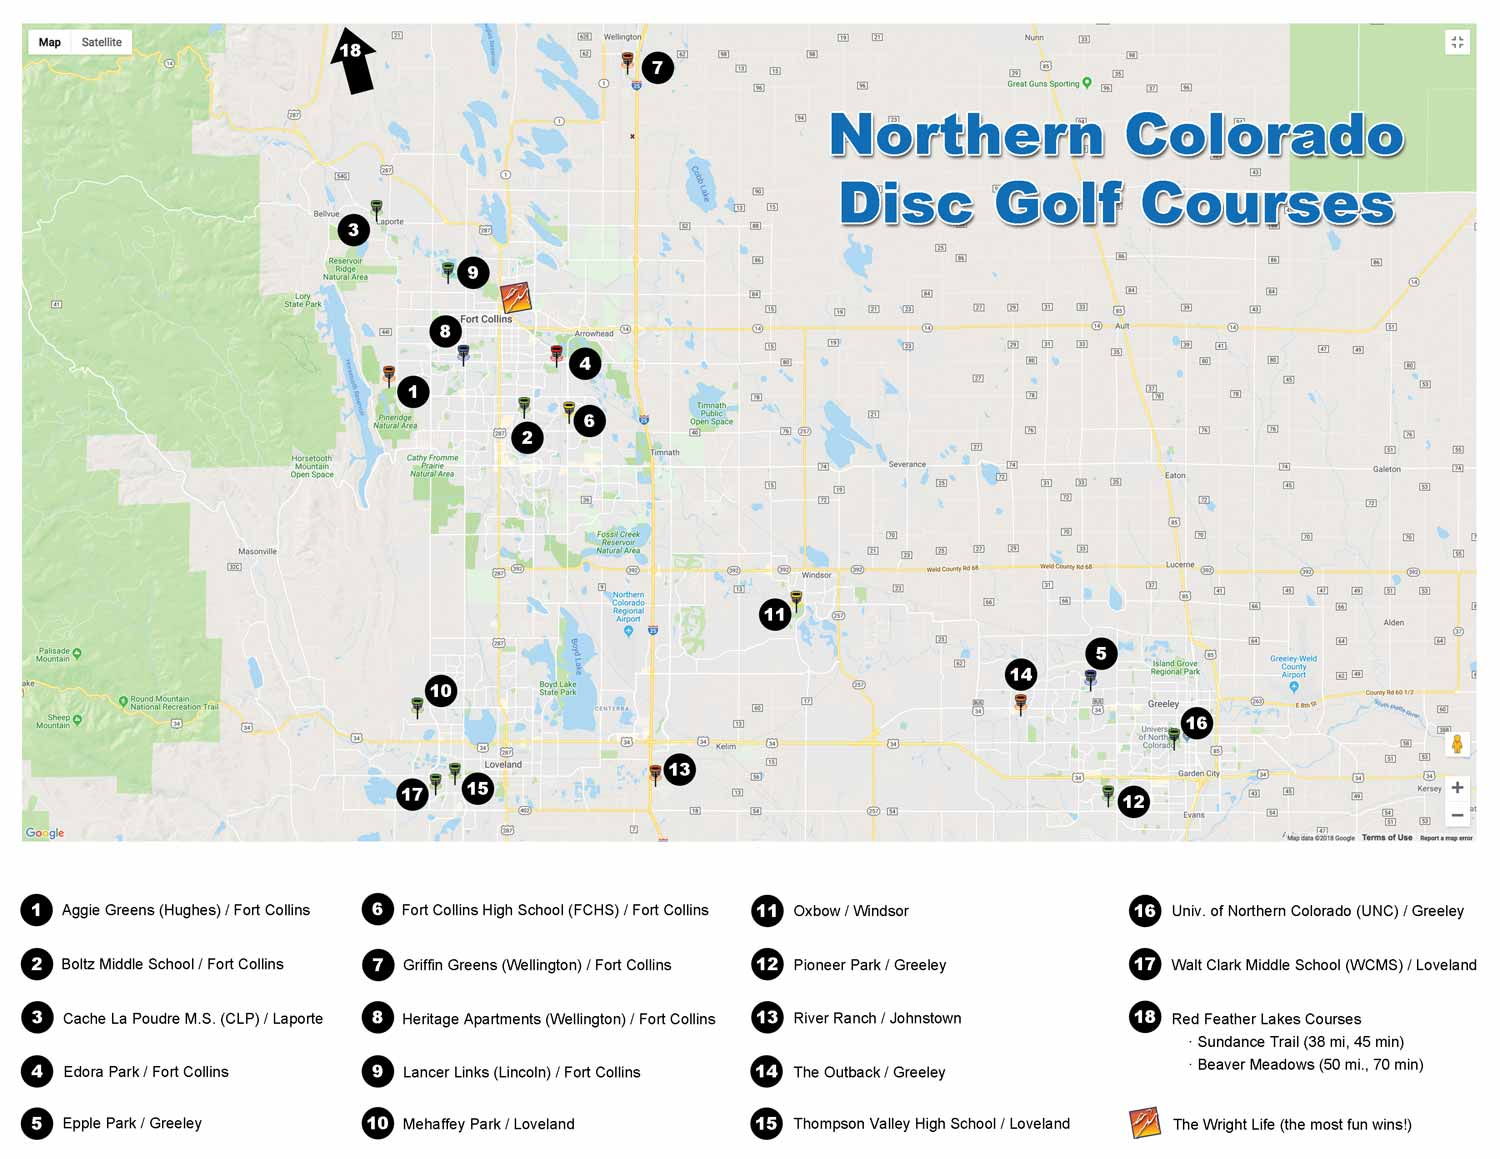 Map of Northern Colorado courses